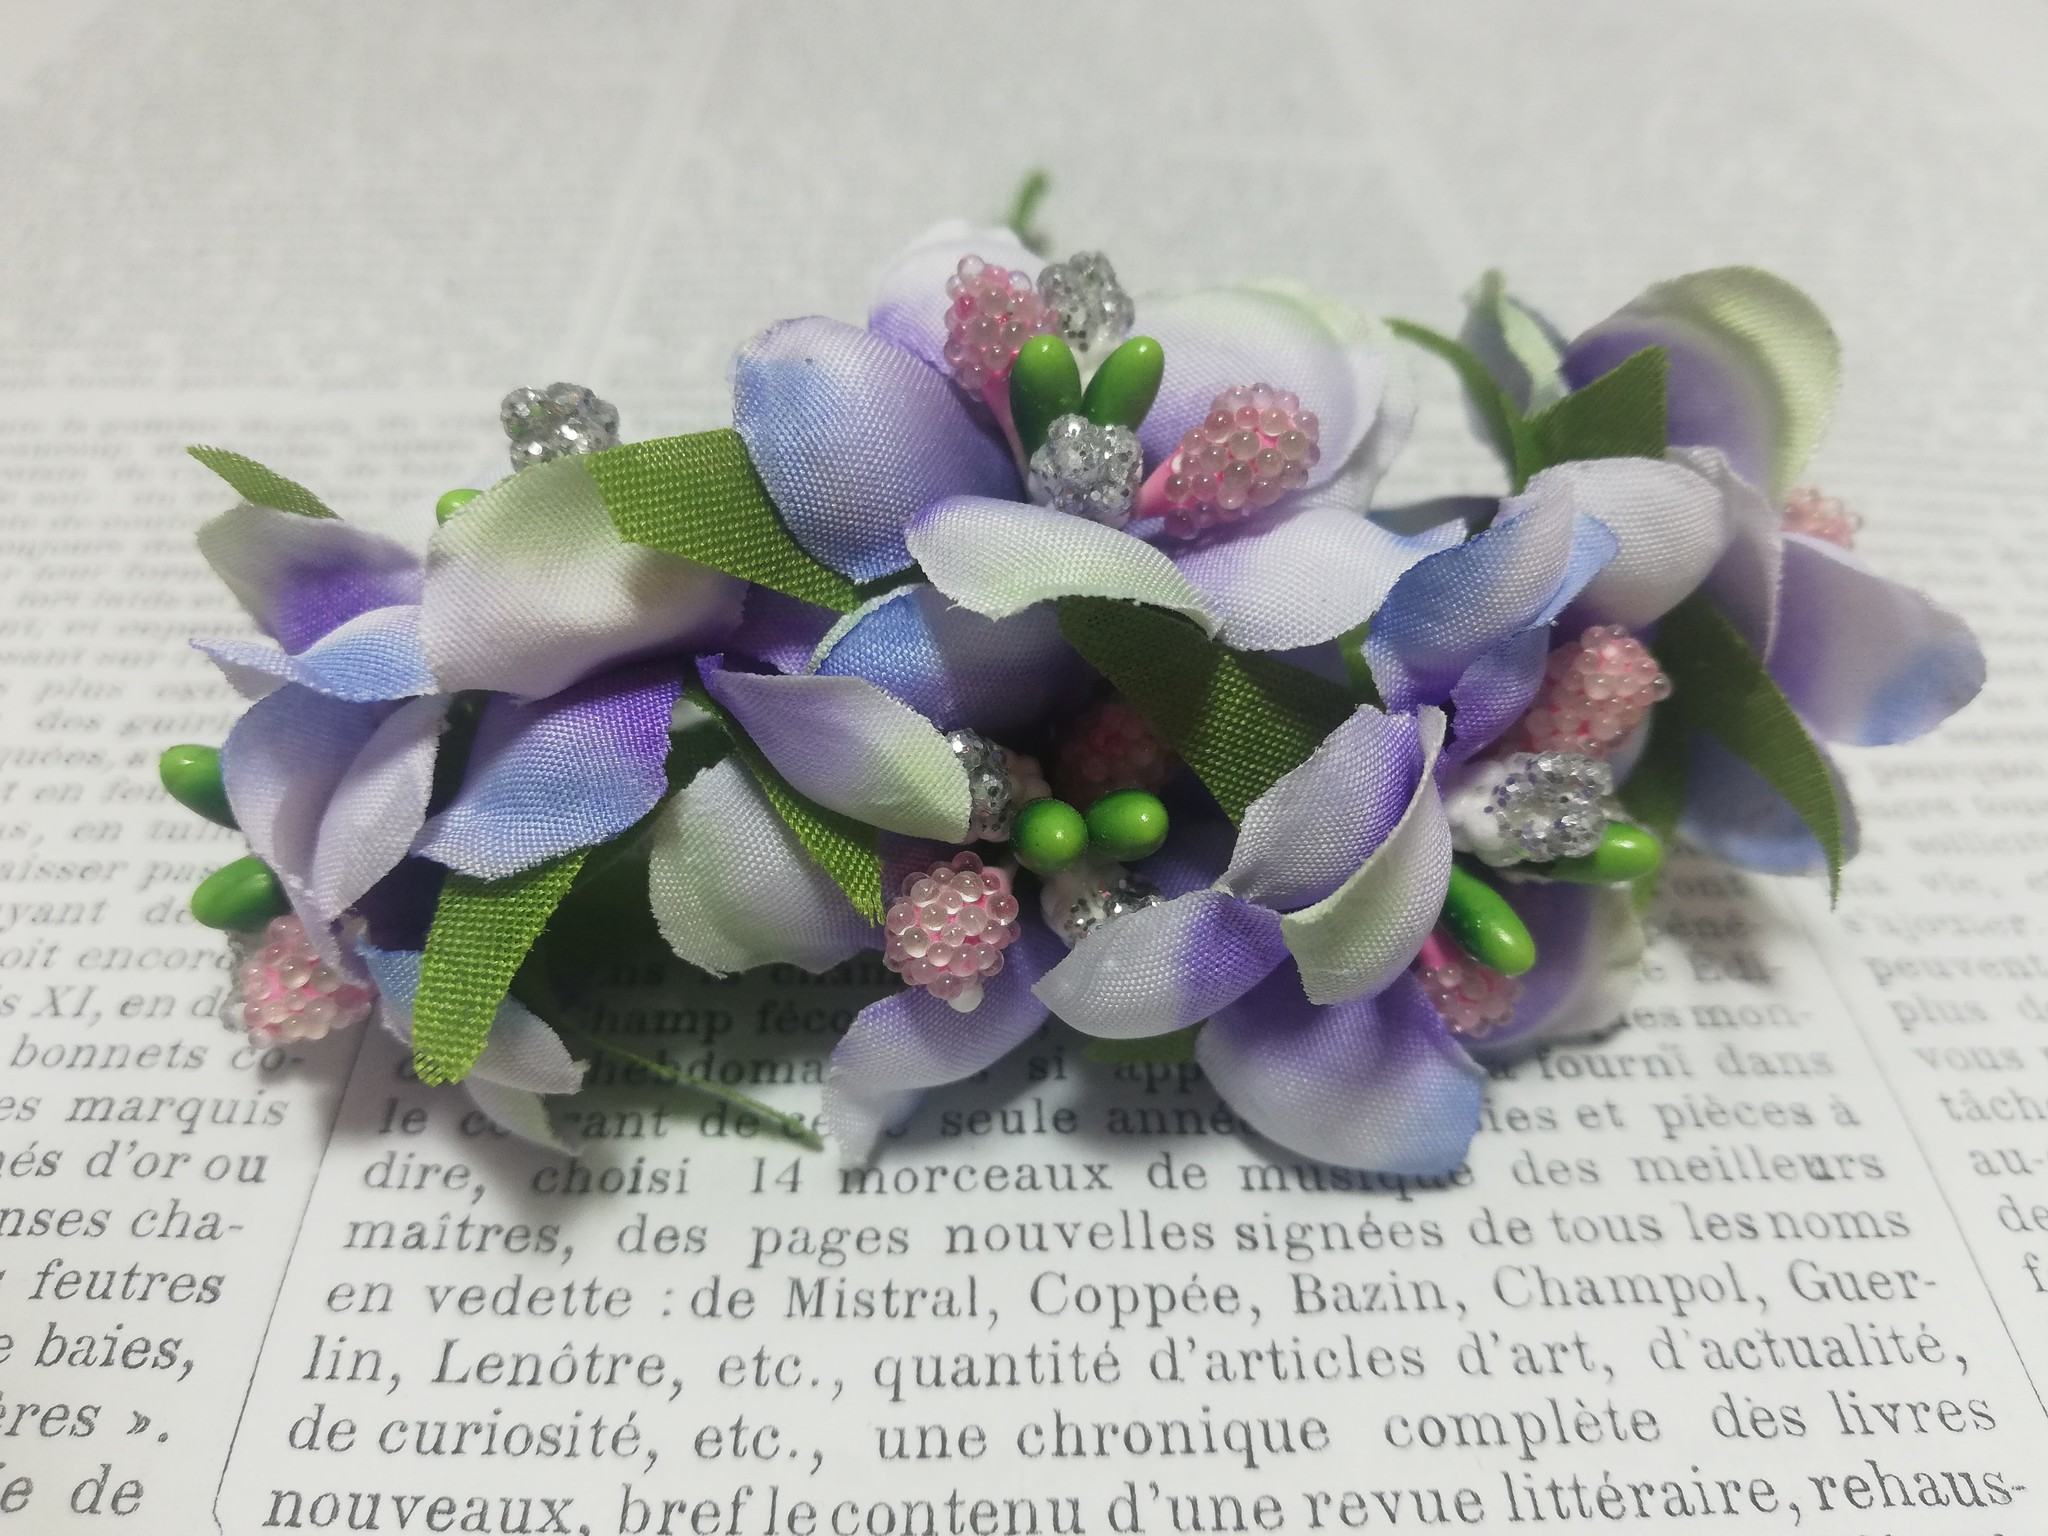 Little posy of flowers with beads.